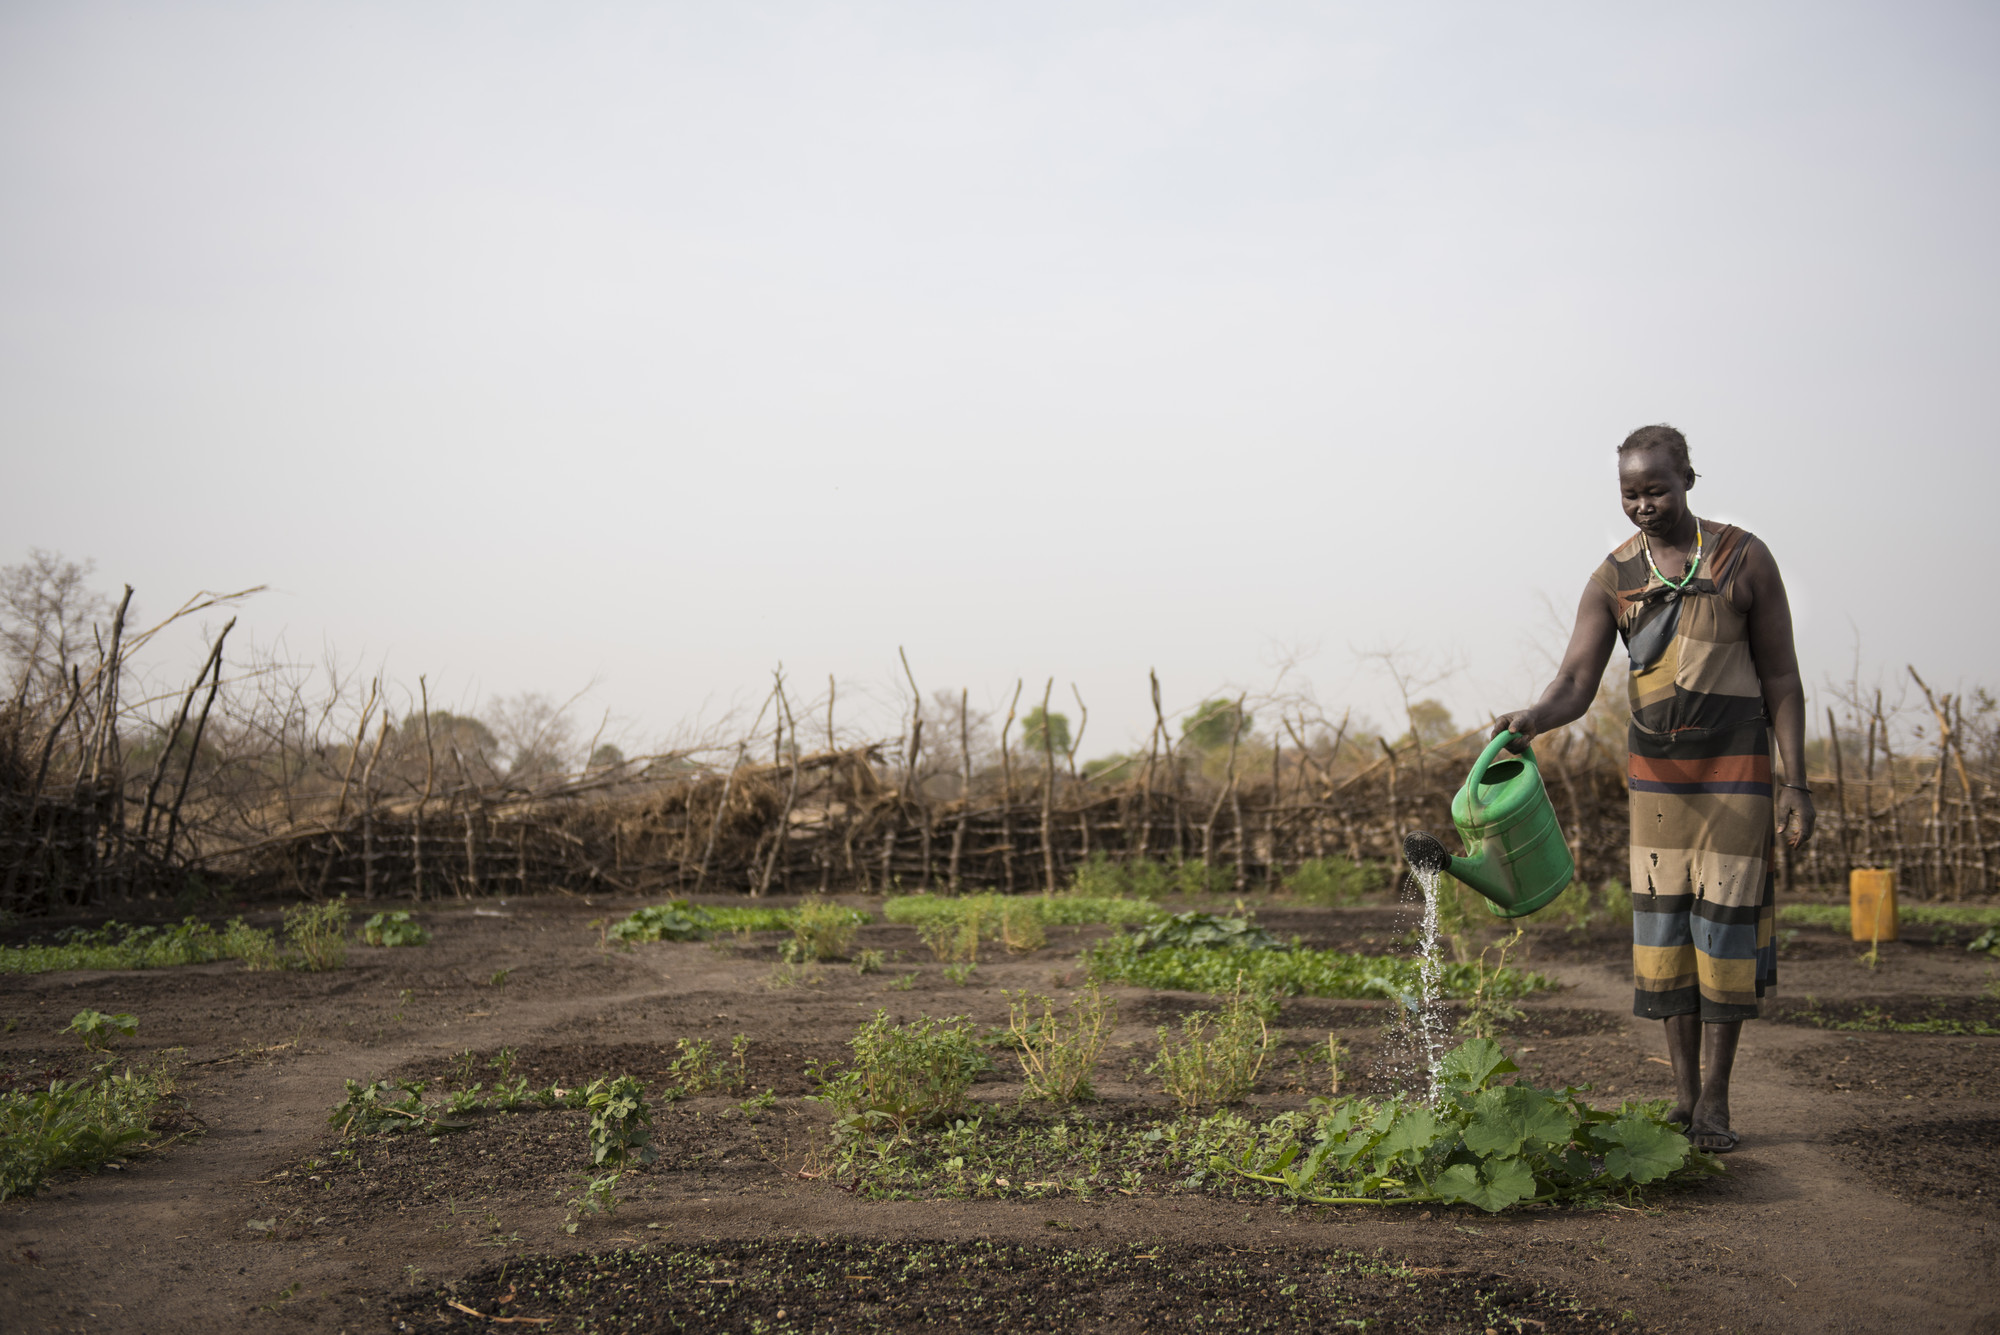 Believers feed the hungry as South Sudan braces for famine